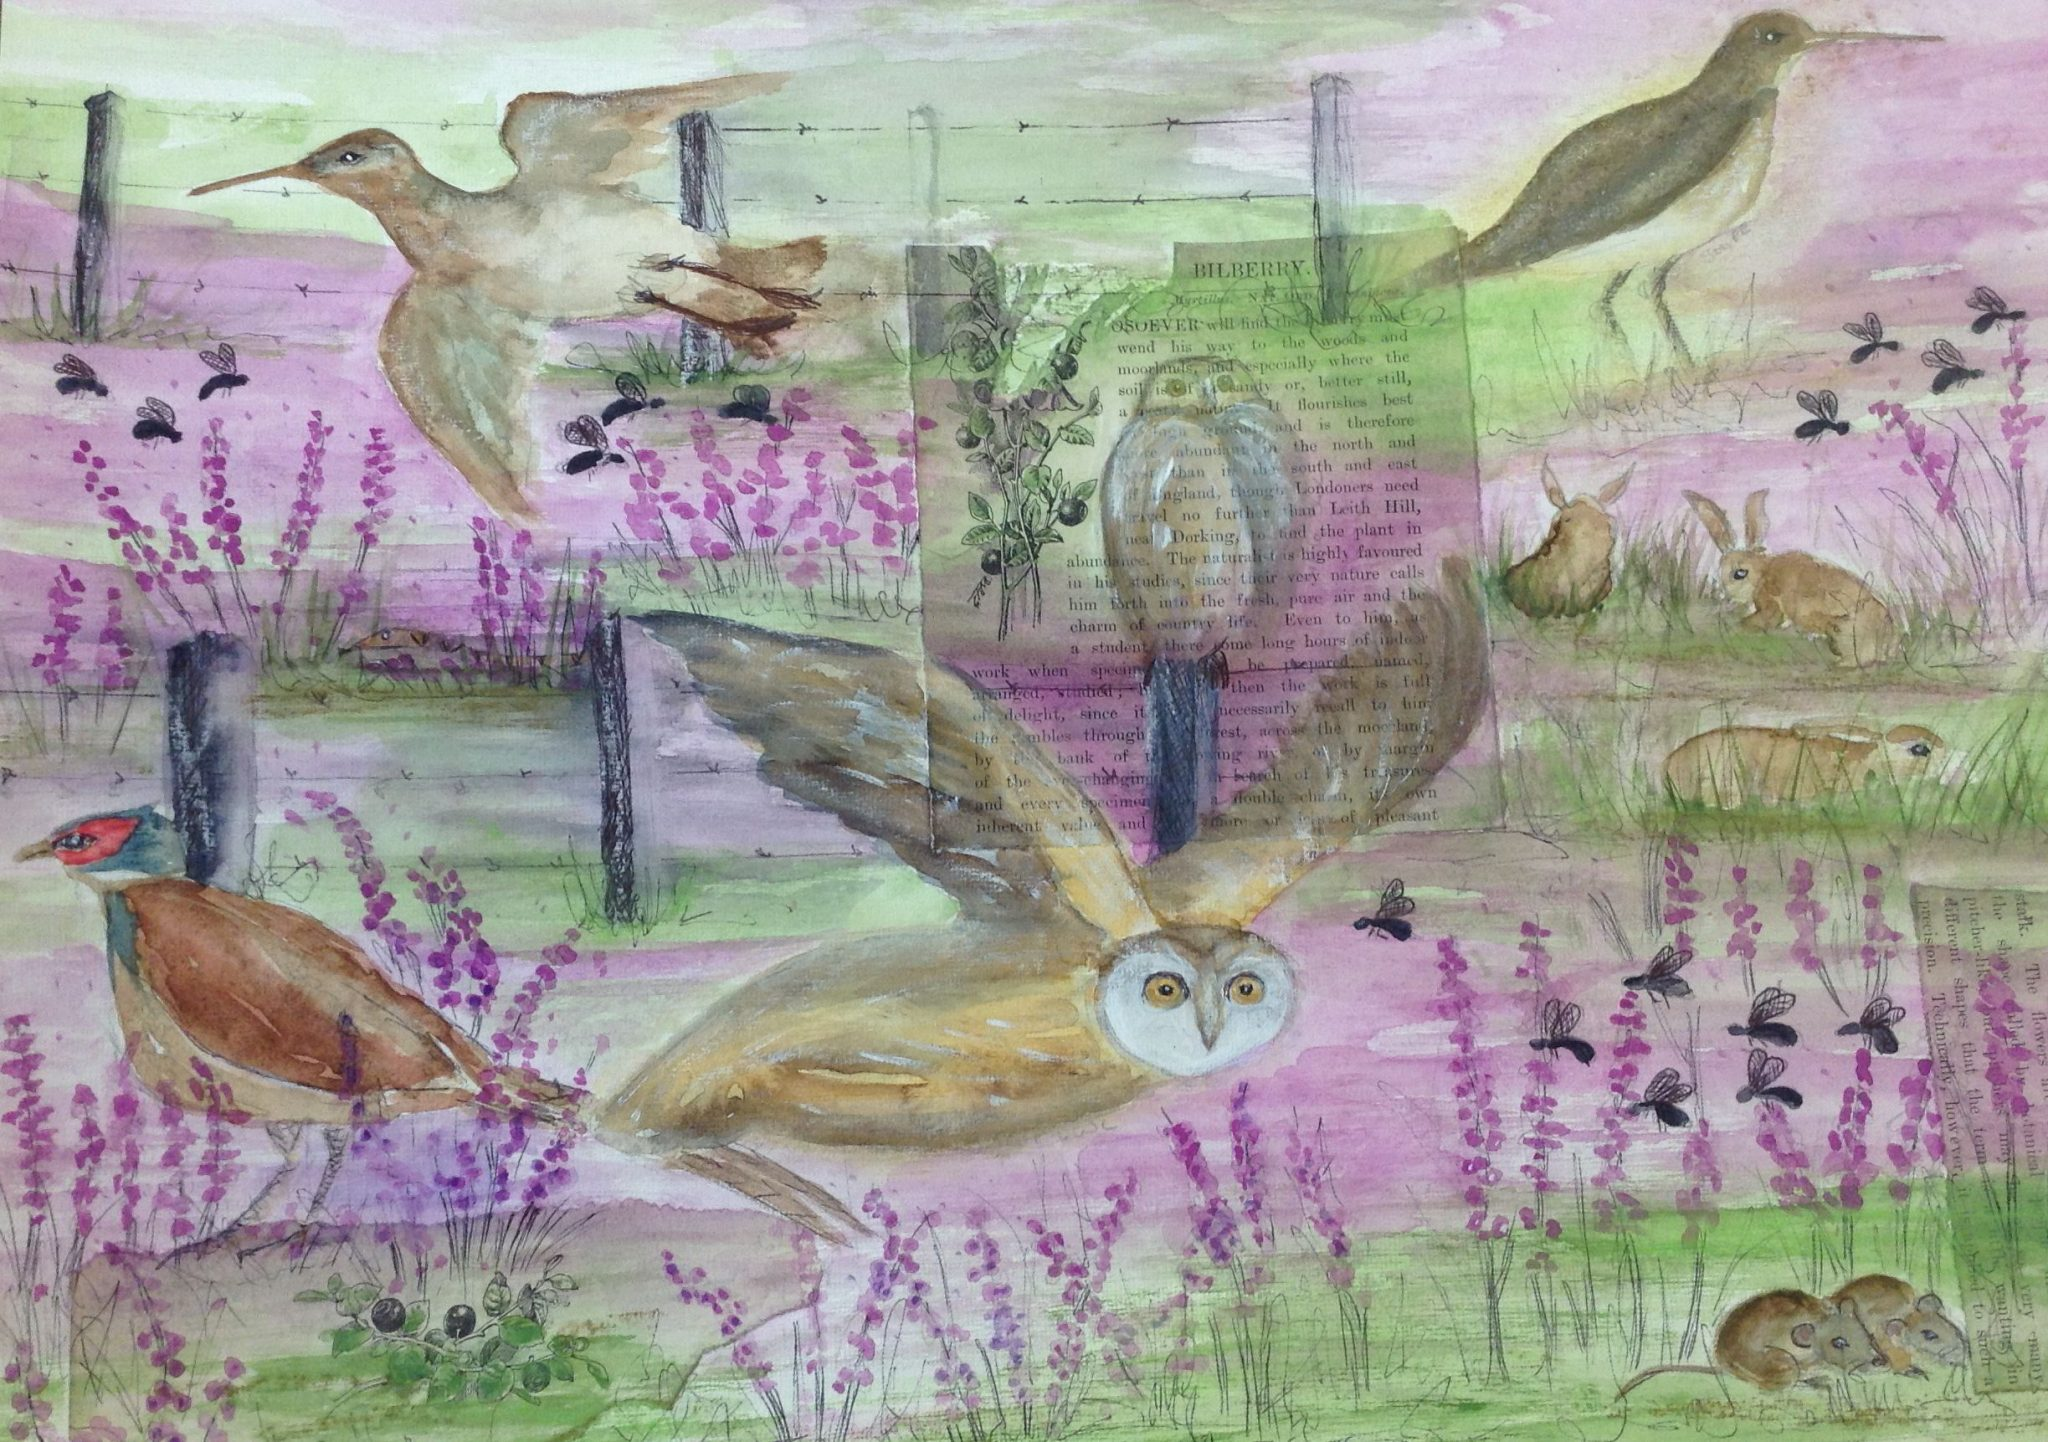 A watercolour painting of wildlife in a meadow with purple flowers